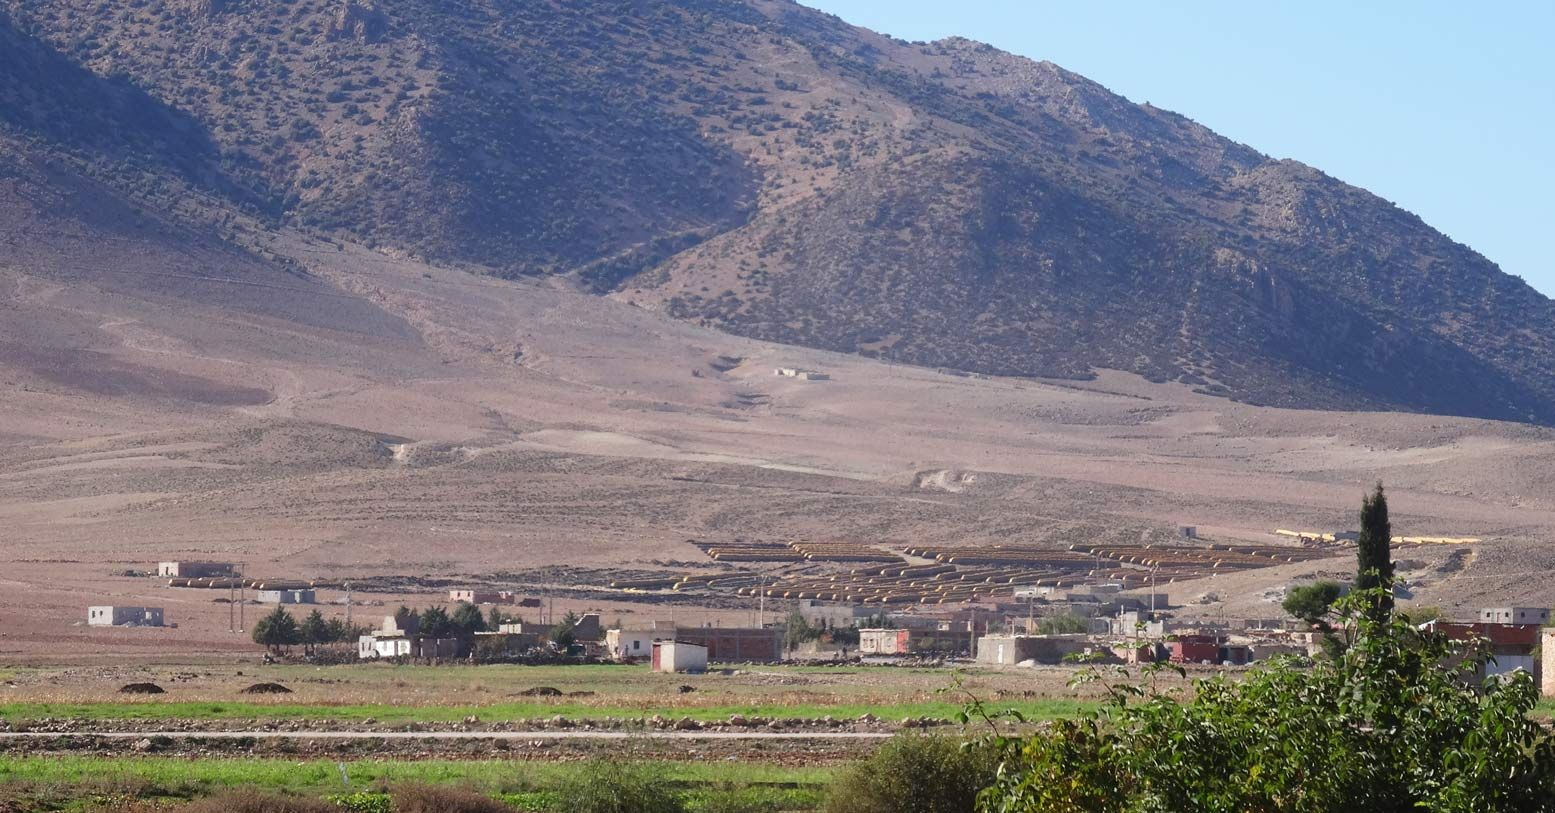 Amazing landscape in the Middle Altas of Morocco, very close to the ceder woods. One of the cooperatives I work with is settled in this very small village.